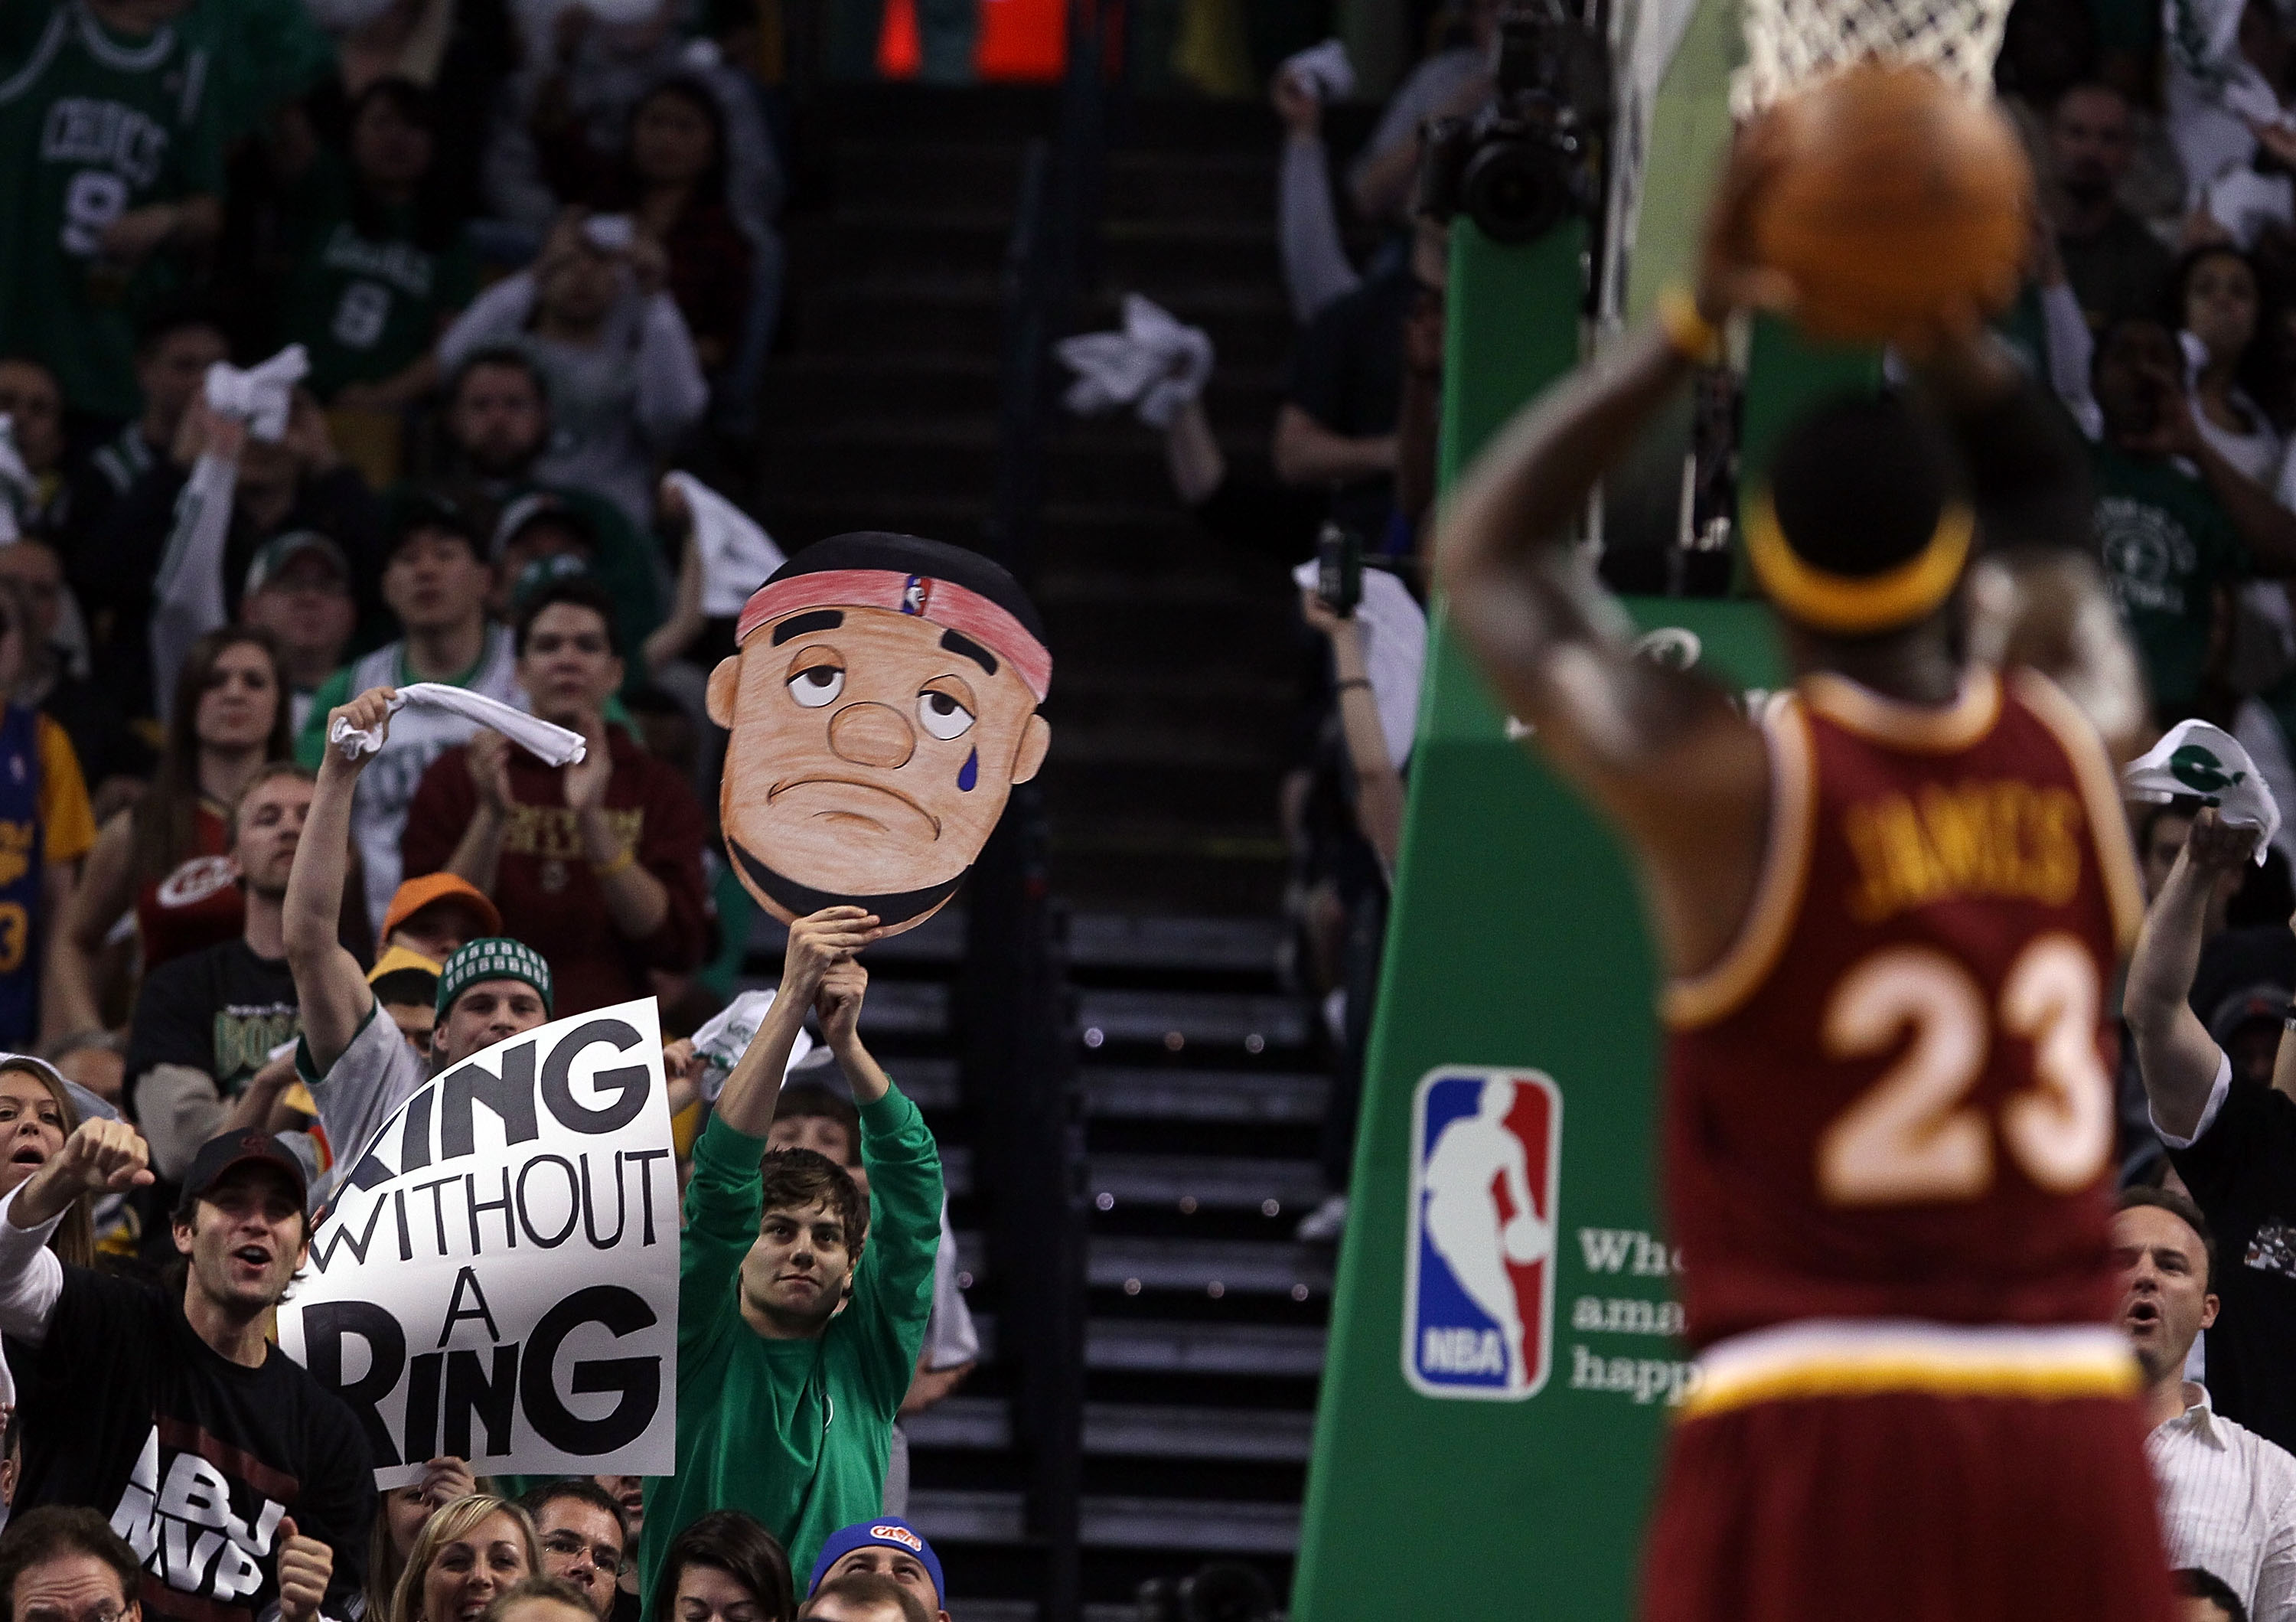 BOSTON - MAY 09:  Fans try to distract LeBron James #23 of the Cleveland Cavaliers as he tries to shoot a free throw in the first half against the Boston Celtics during Game Four of the Eastern Conference Semifinals of the 2010 NBA playoffs at TD Garden o